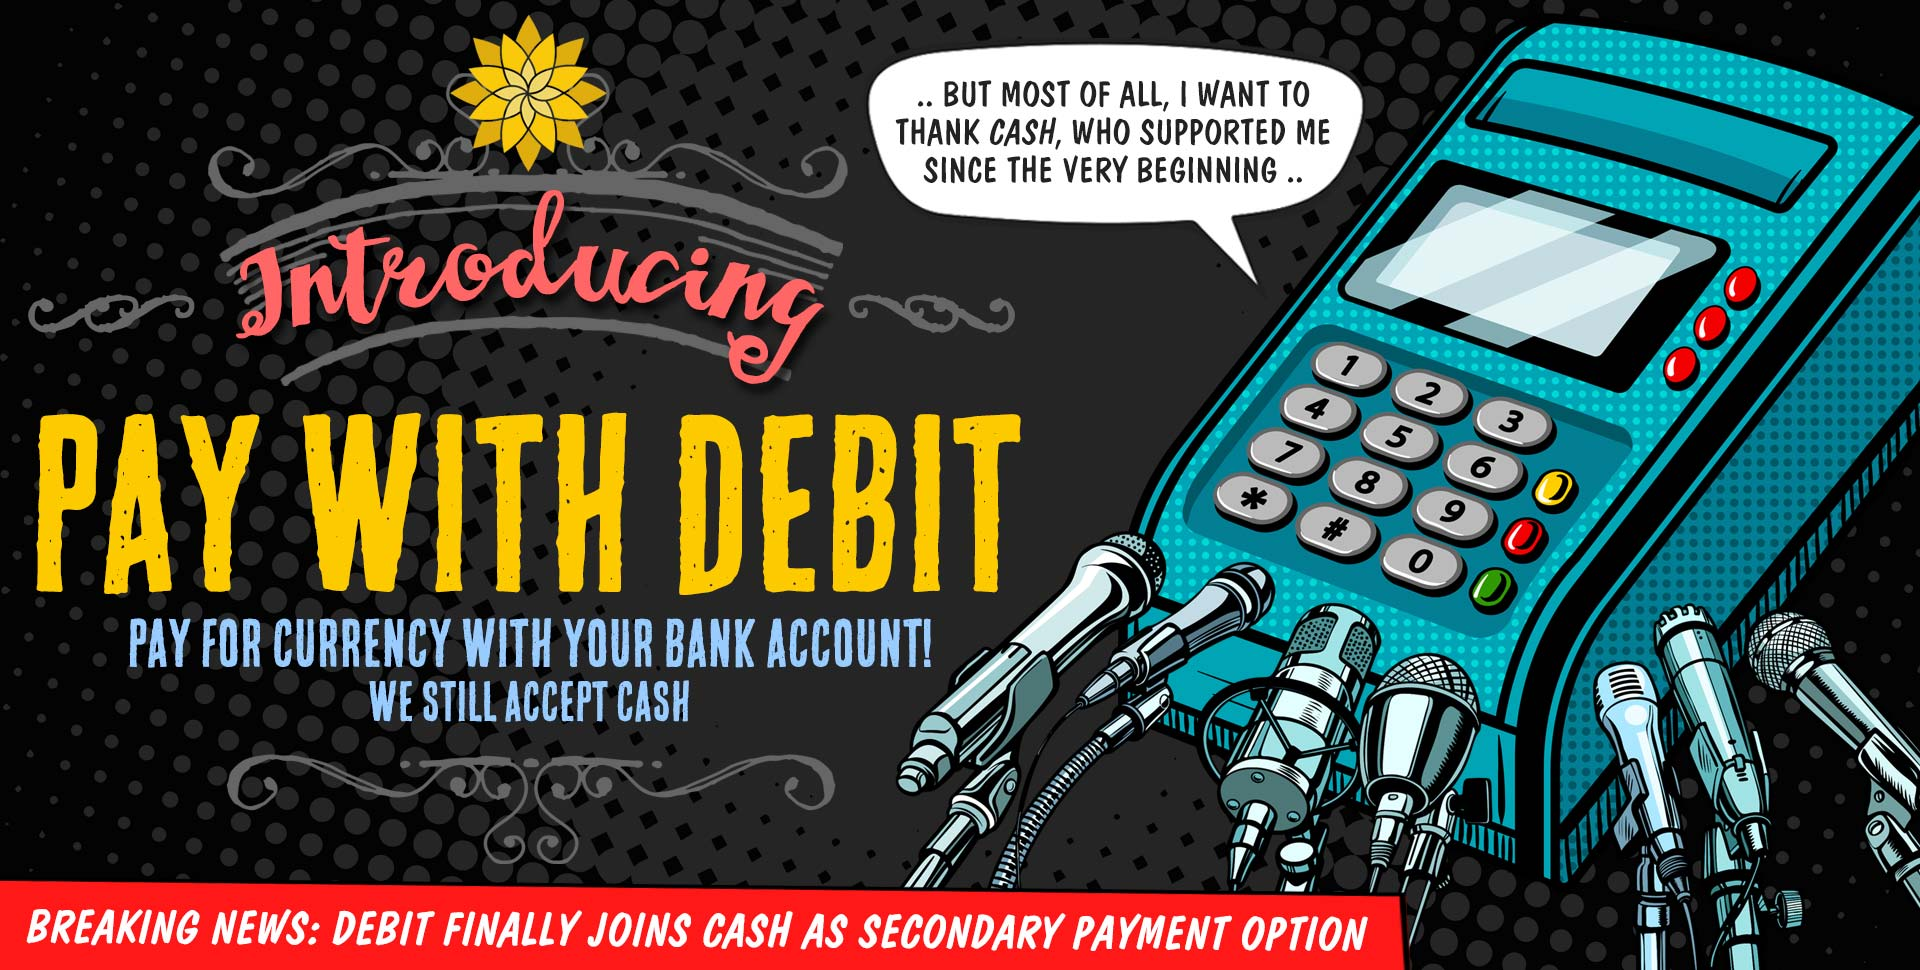 Pay-With-Debit, exchange currency using your bank account